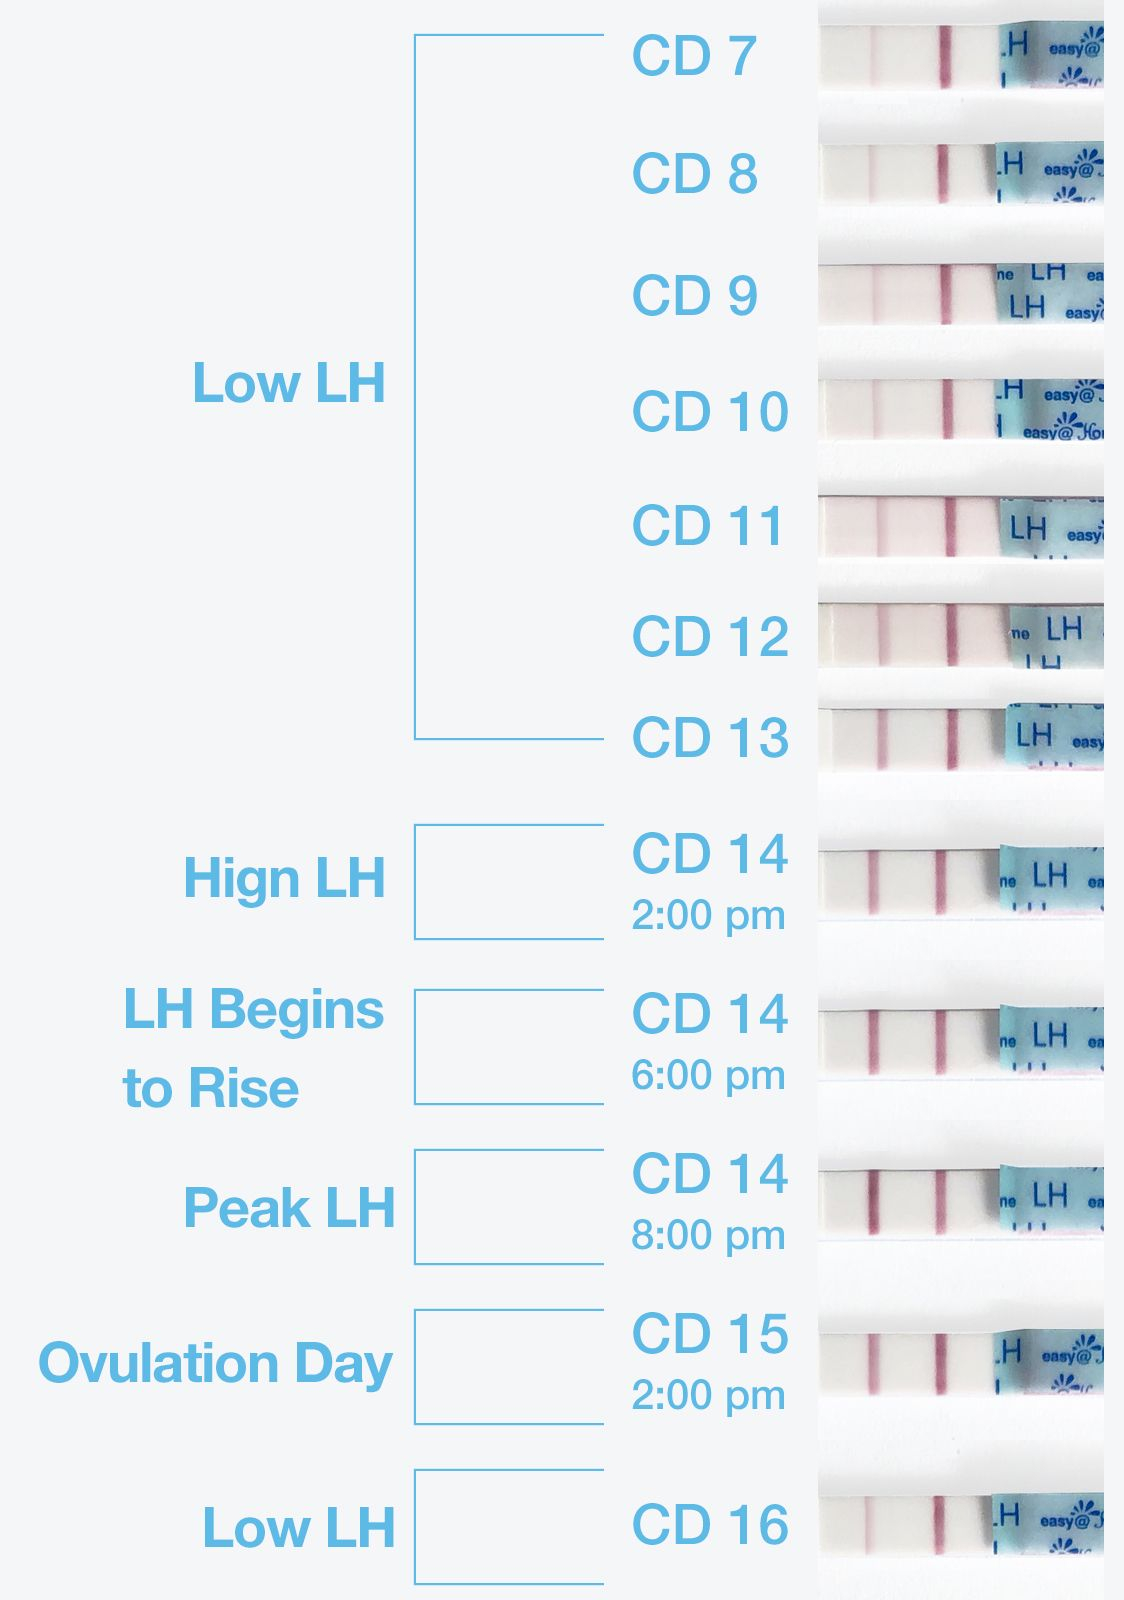 Pin On Ovulation Cycle & Ovulation Testing Intended For When To Take A Pregnancy Test Calendar